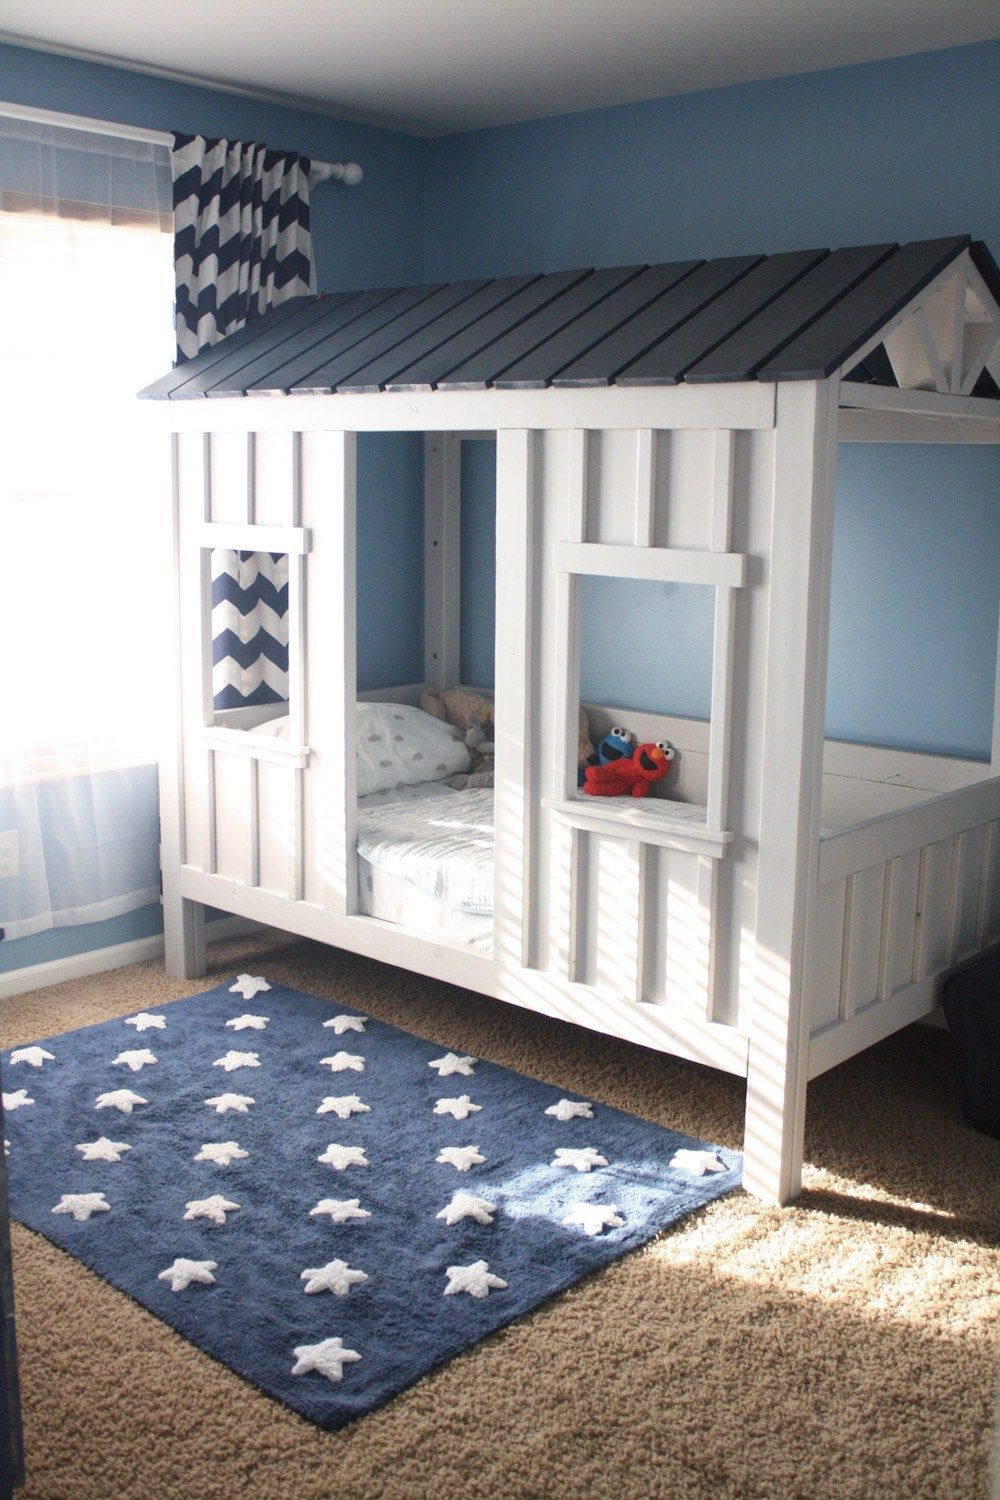 Are Cabin Beds The Solution For Small Bedrooms: The Cutest DIY Cabin Bed!